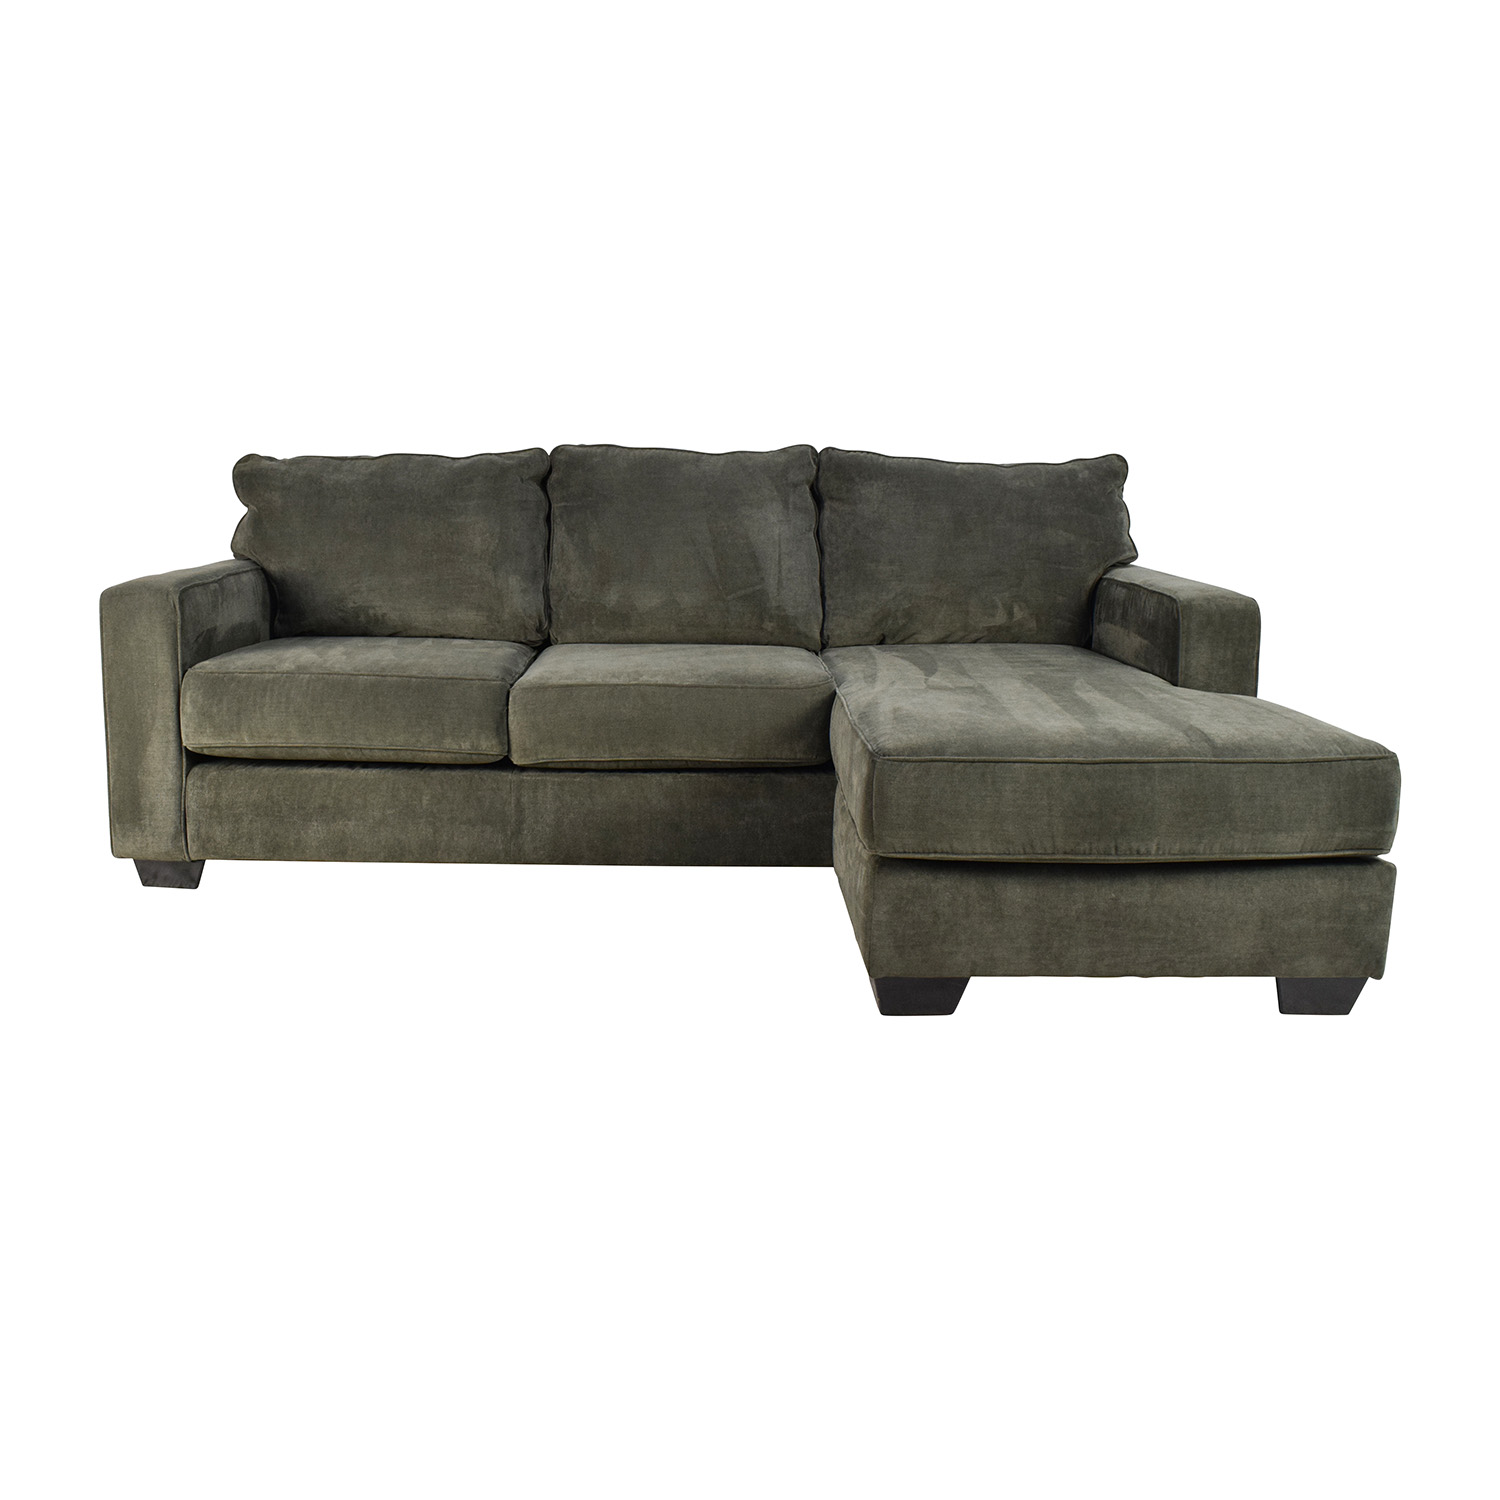 Jennifer Convertibles Jennifer Convertibles Sectional Sofa discount